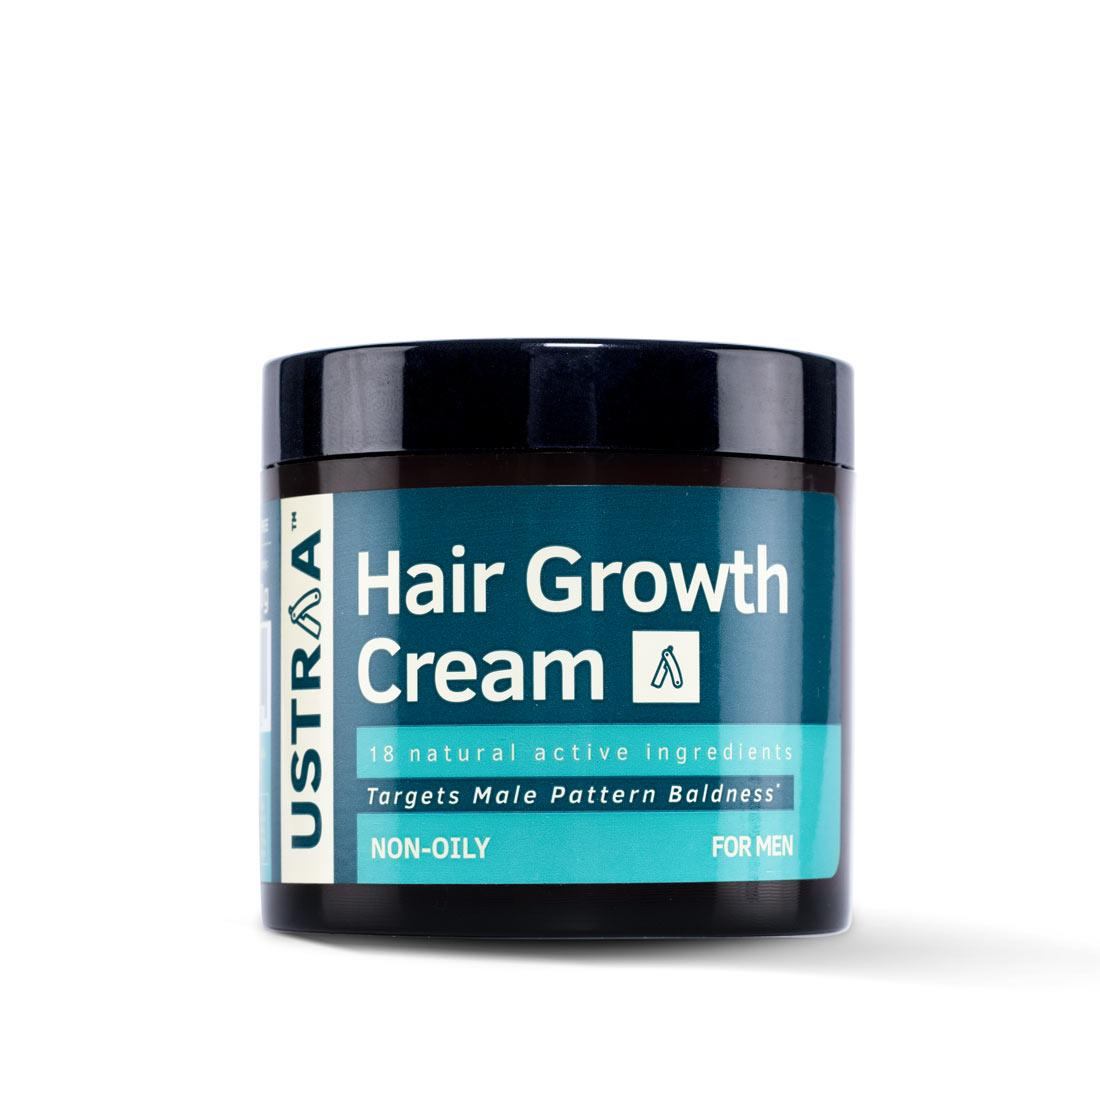 Ustraa Onion Hair Growth Cream with Blackseed Oil, Neelbhrigandi, Onion Extract and 4 essential oils to fight hair fall & male pattern baldness, 100g